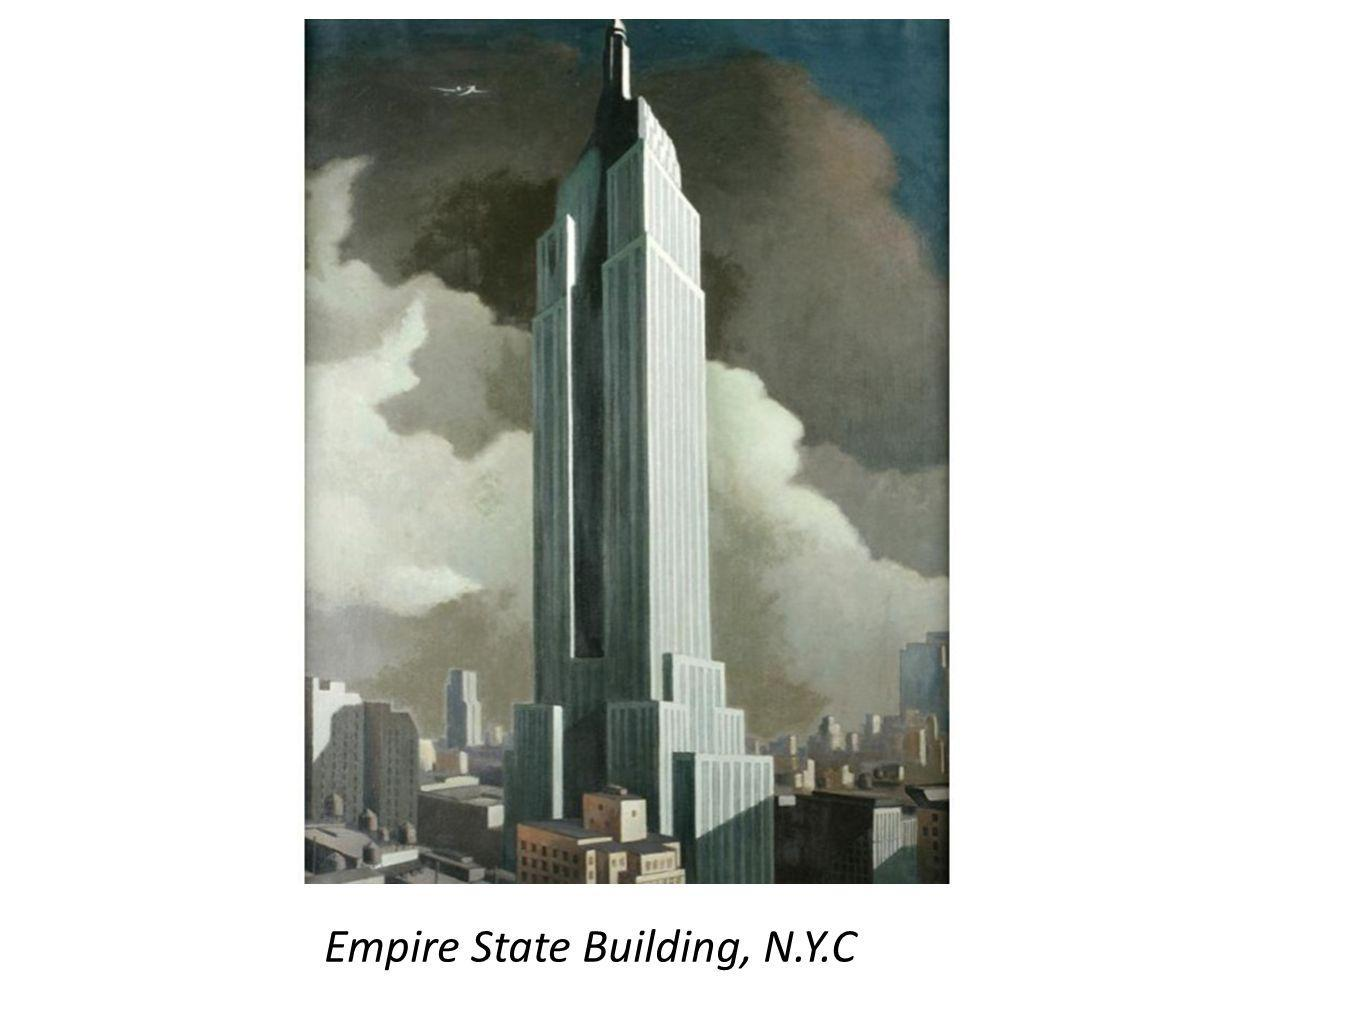 Empire State Building, N.Y.C